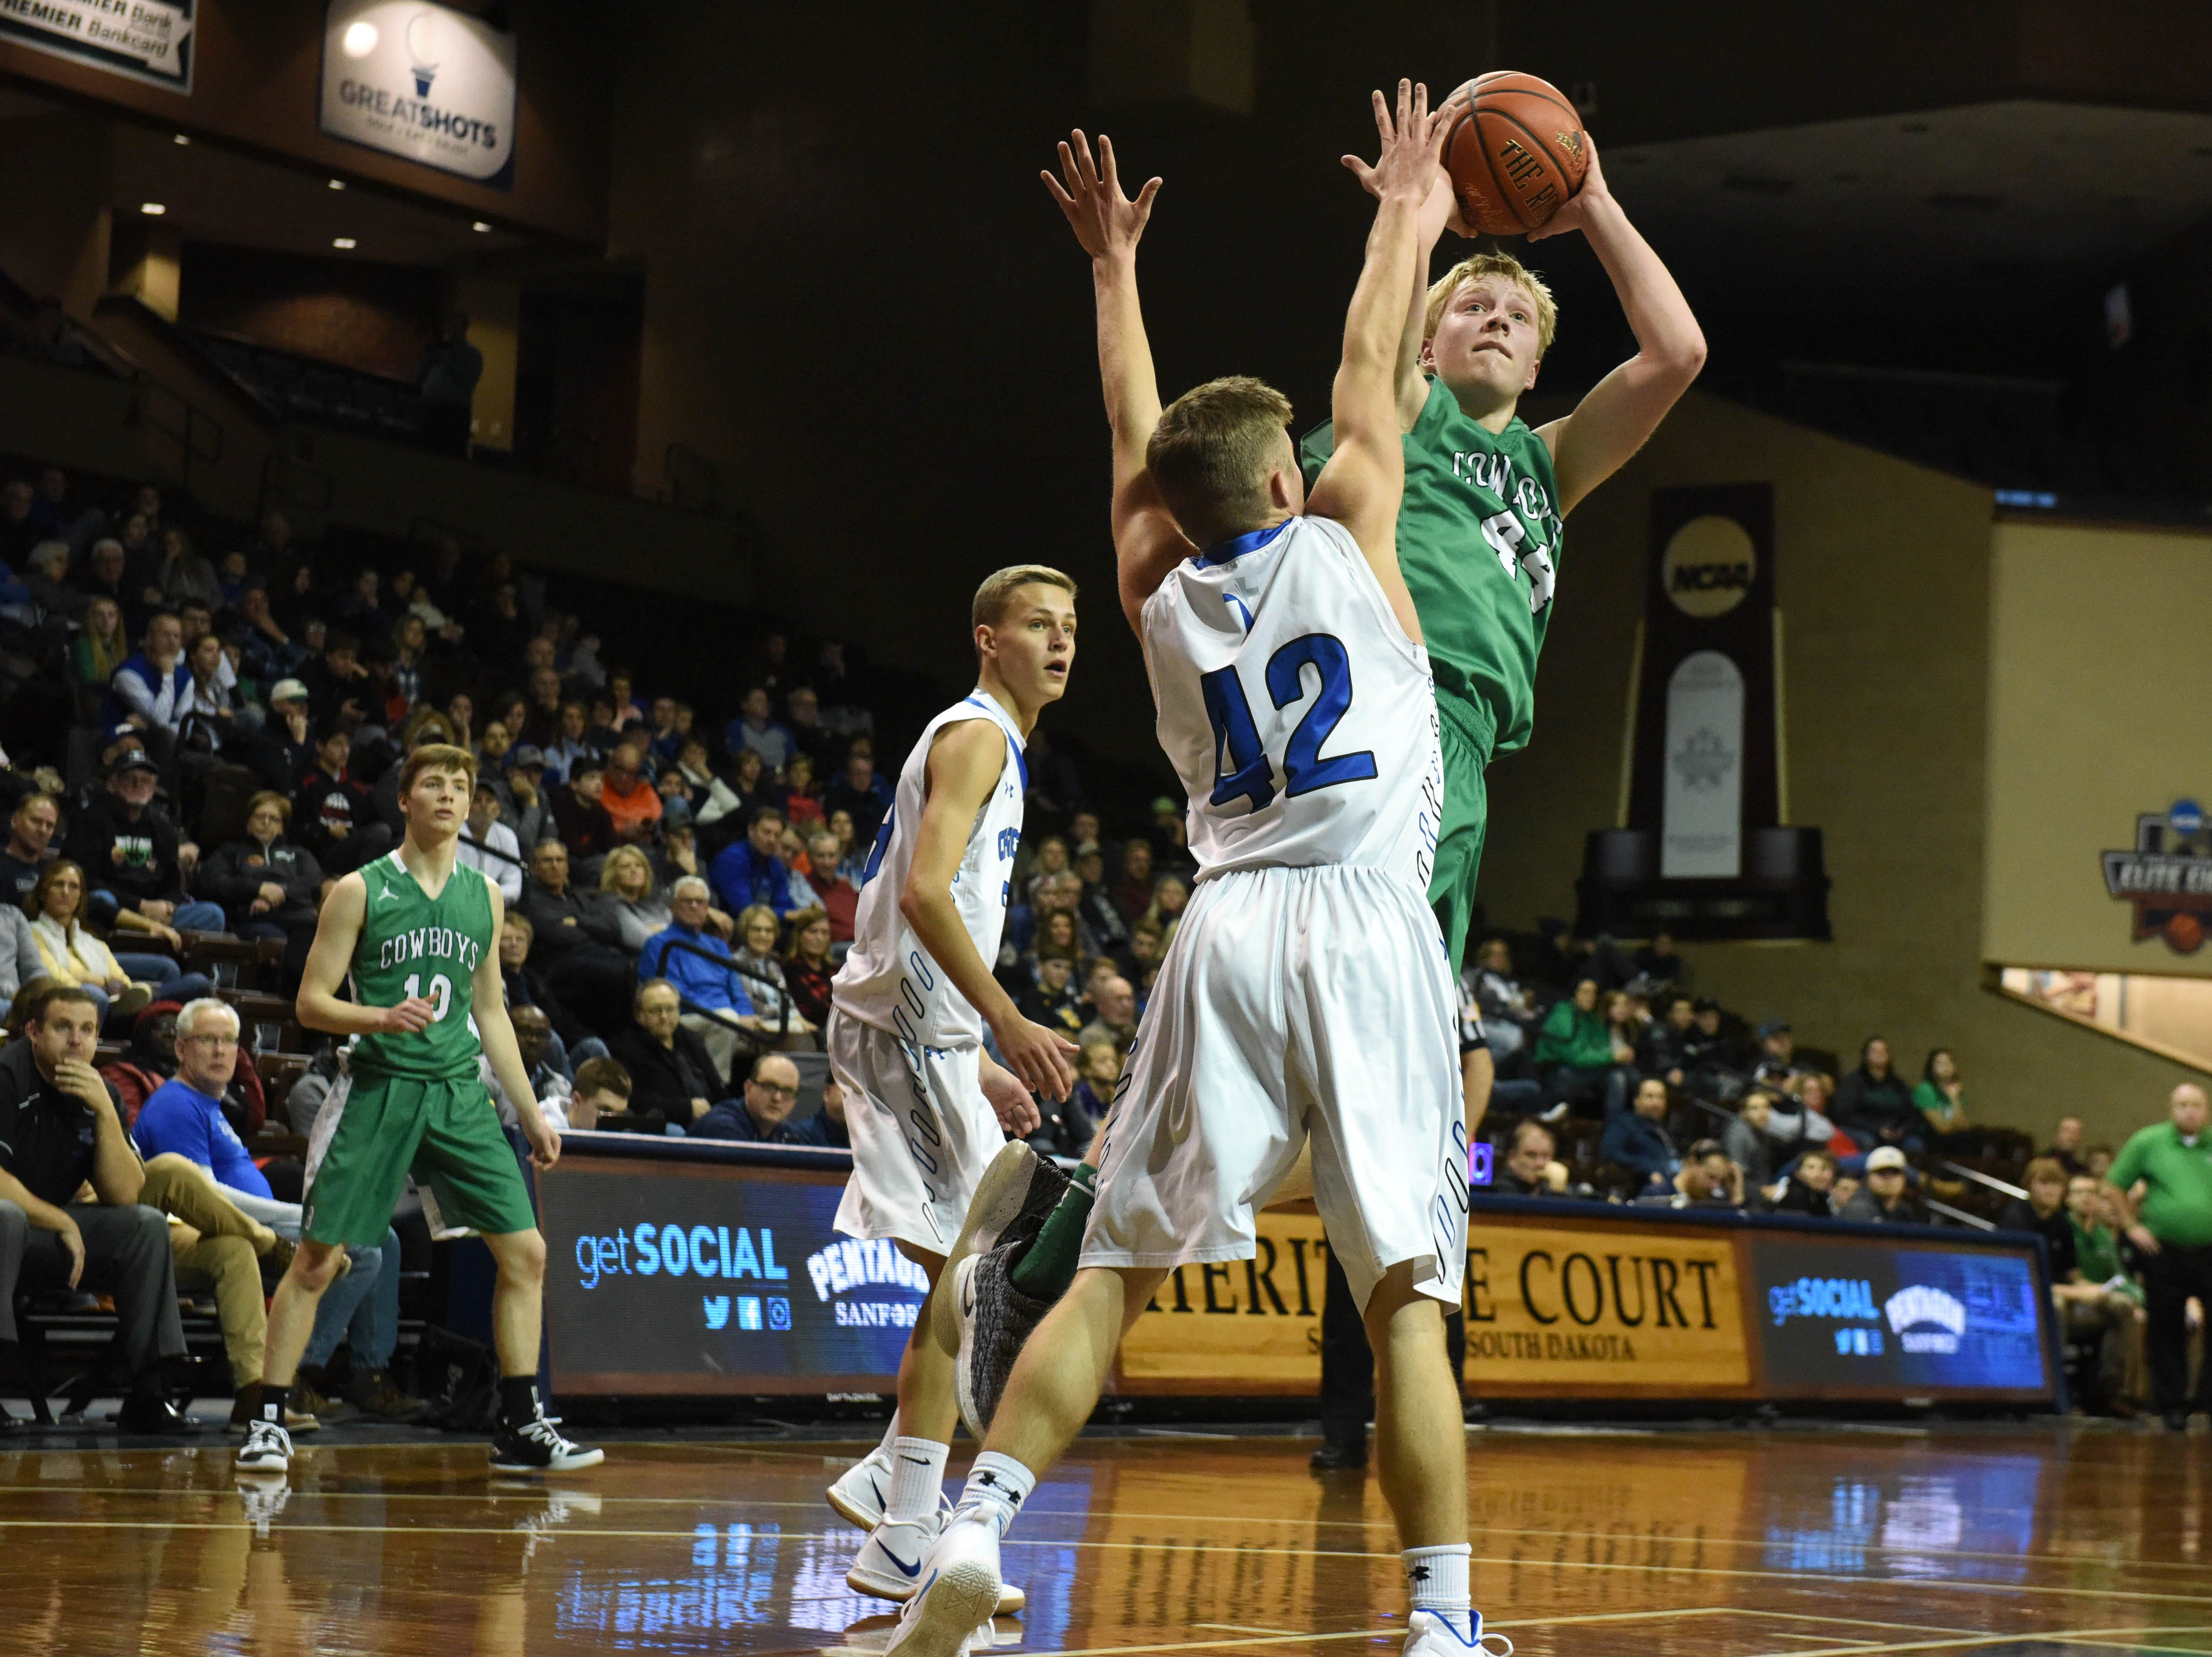 Breckenridge's Jonah Christensen (44) goes up for a shot during a game against Sioux Falls Christian at the Hoop City Classic at the Sanford Pentagon in Sioux Falls, S.D., Saturday, Dec. 29, 2018.